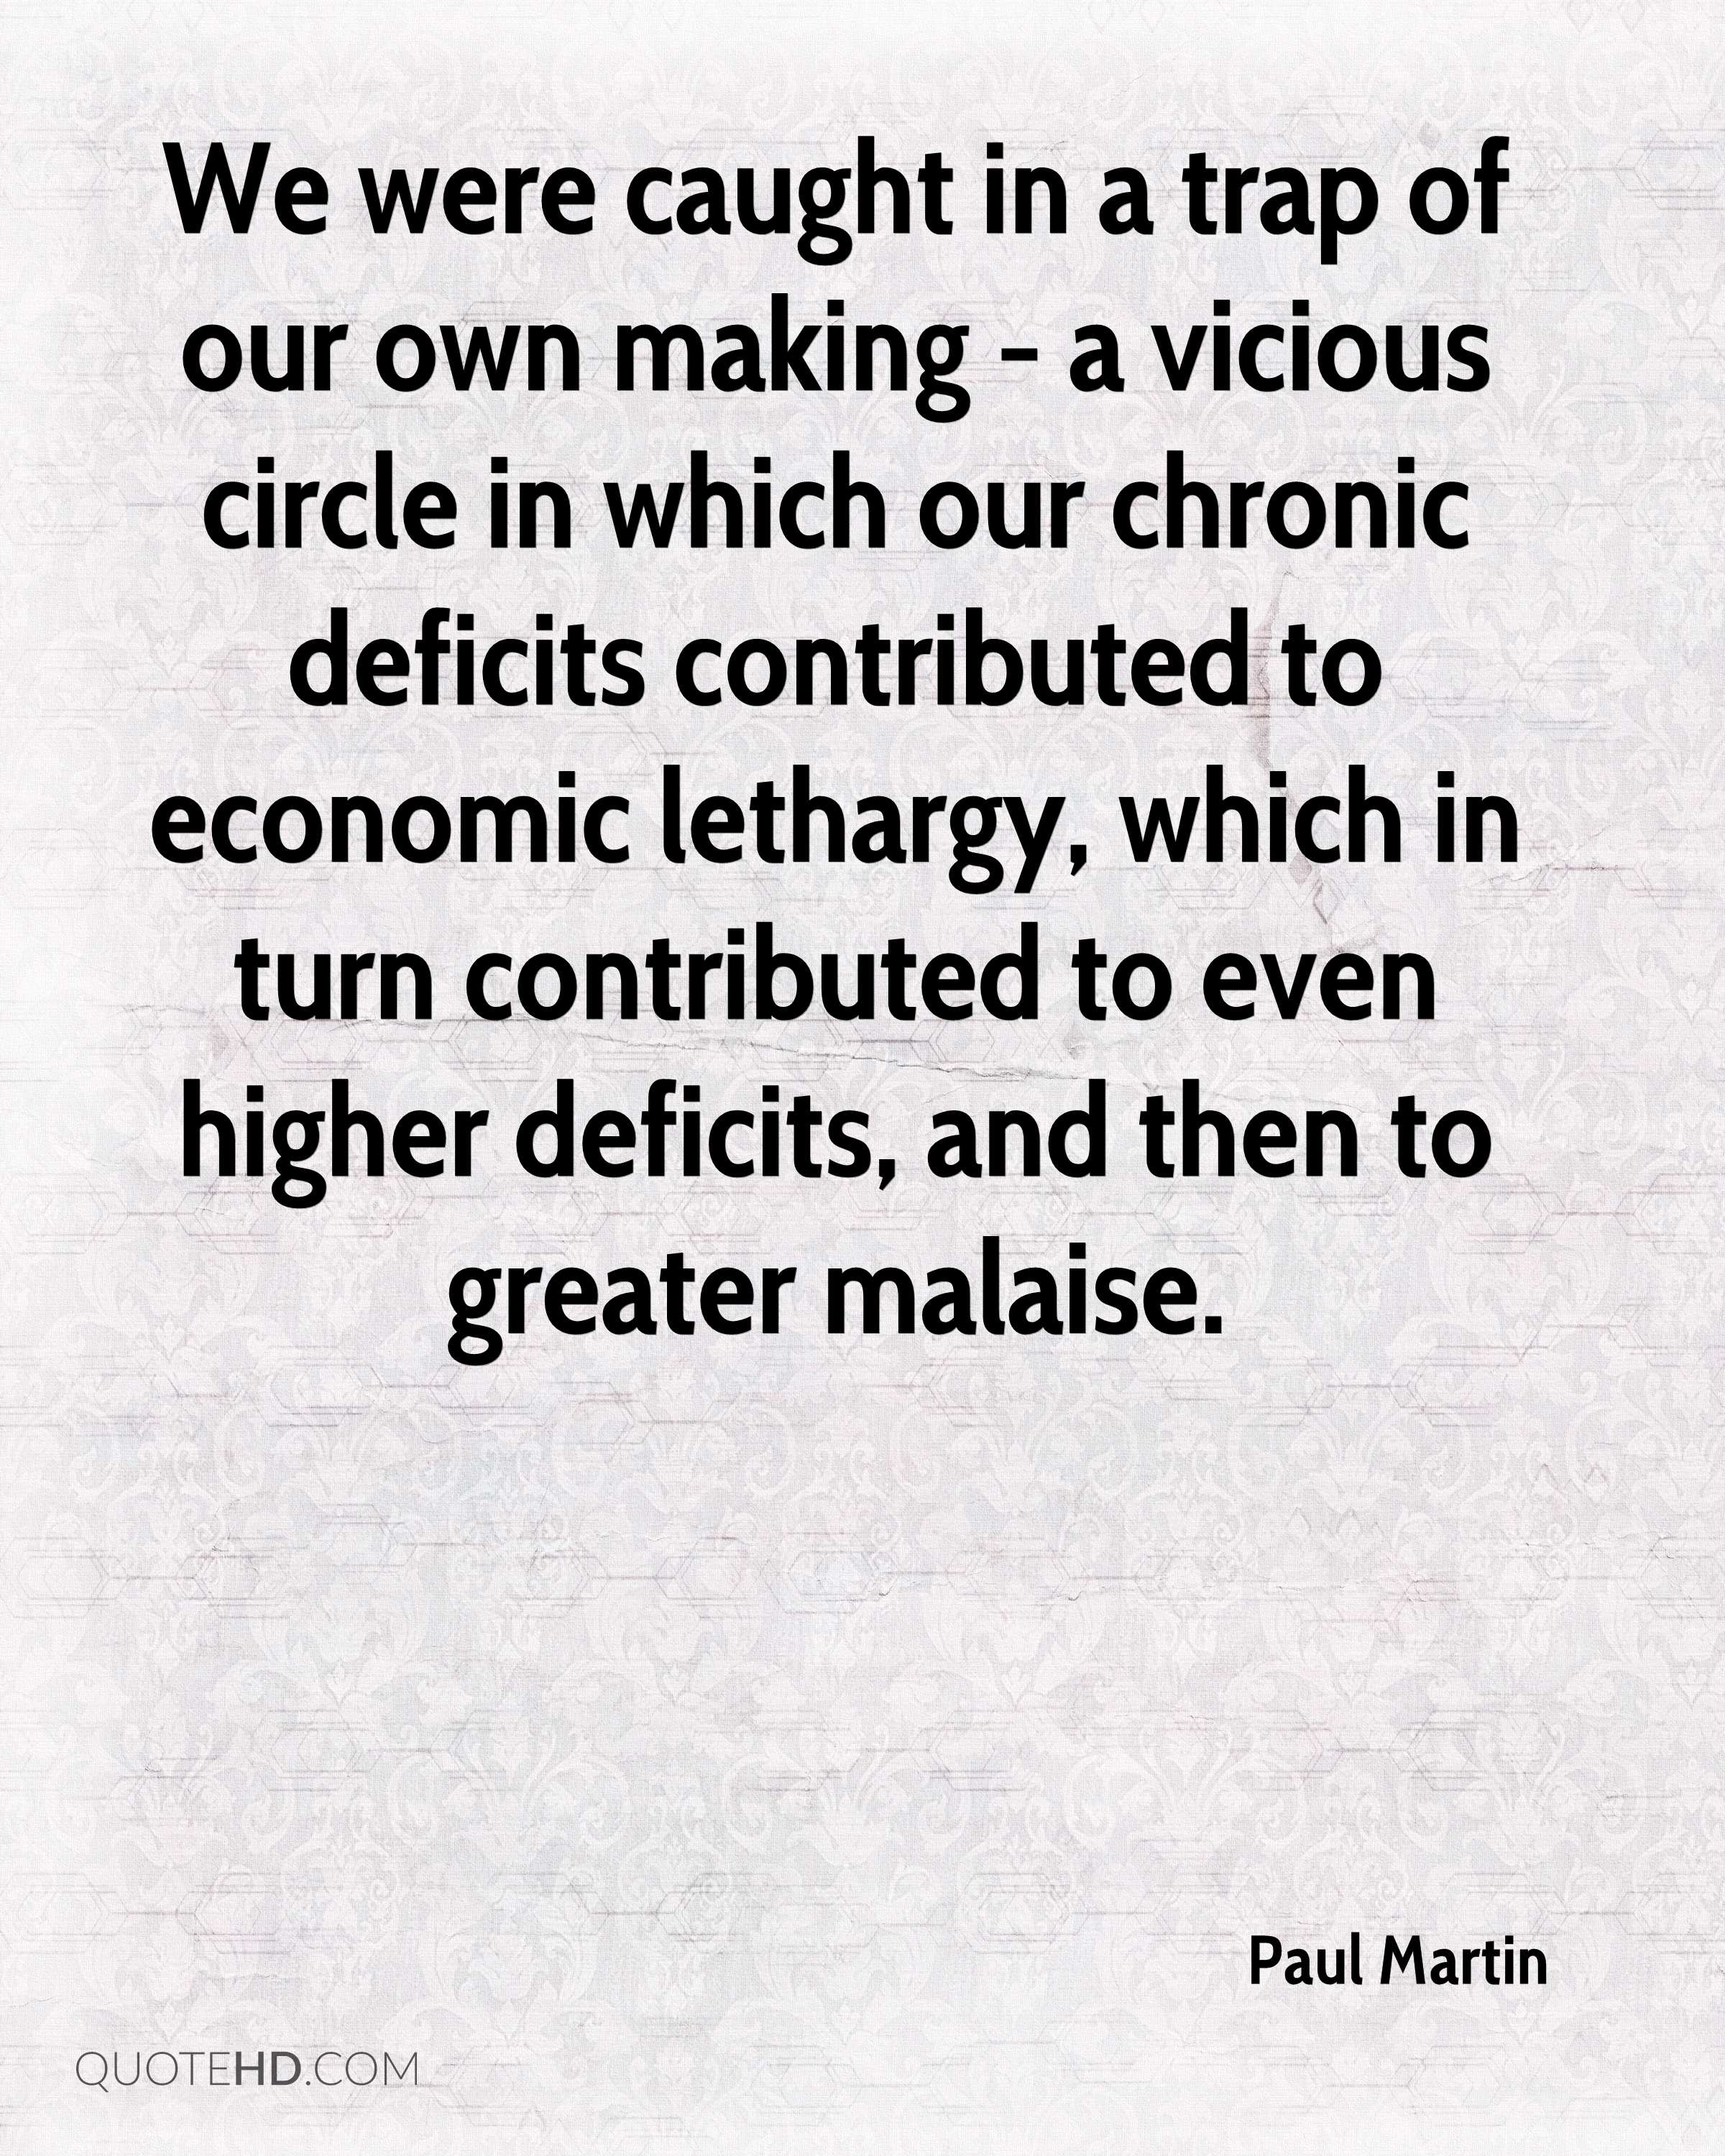 We were caught in a trap of our own making - a vicious circle in which our chronic deficits contributed to economic lethargy, which in turn contributed to even higher deficits, and then to greater malaise.